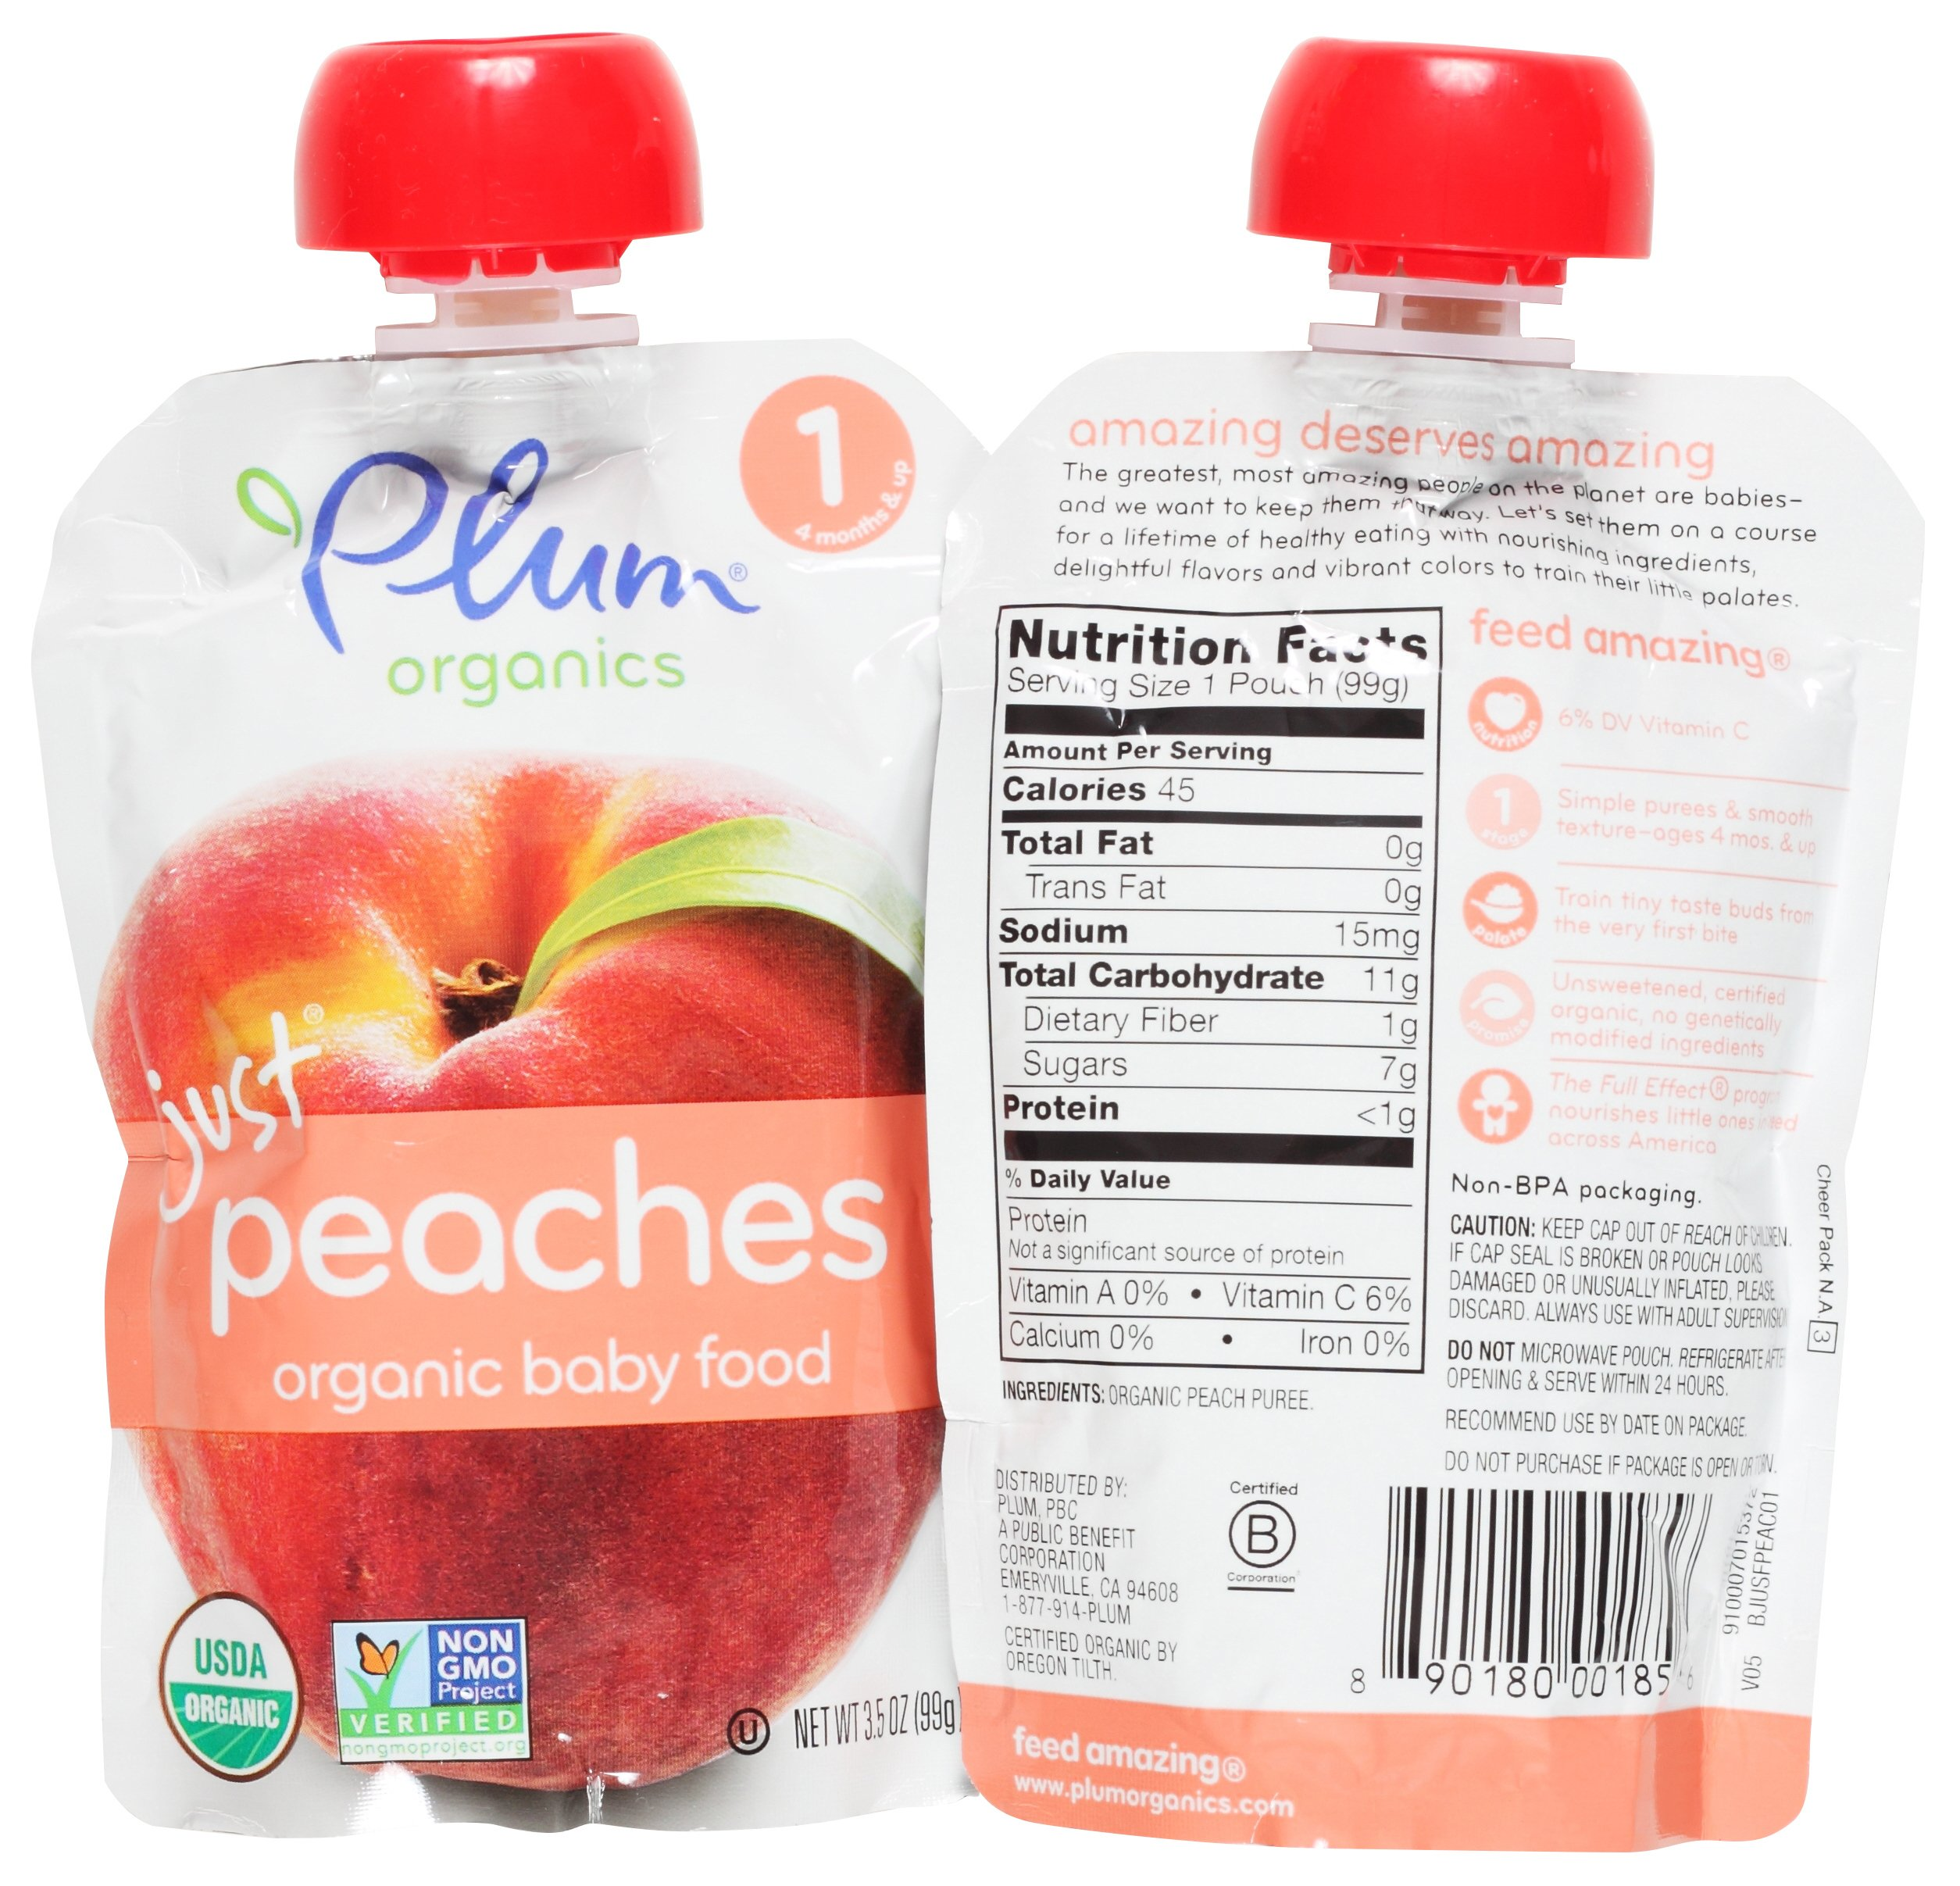 Plum Organics Stage 1 Just Fruit & Veggies Variety Pouch Bundle: (2) Just Prunes 3.5oz, (2) Just Mangos 3.5oz, (2) Just Sweet Potato 3oz, and (2) Just Peaches 3.5oz (8 Pack Total) by Plum Organics (Image #5)